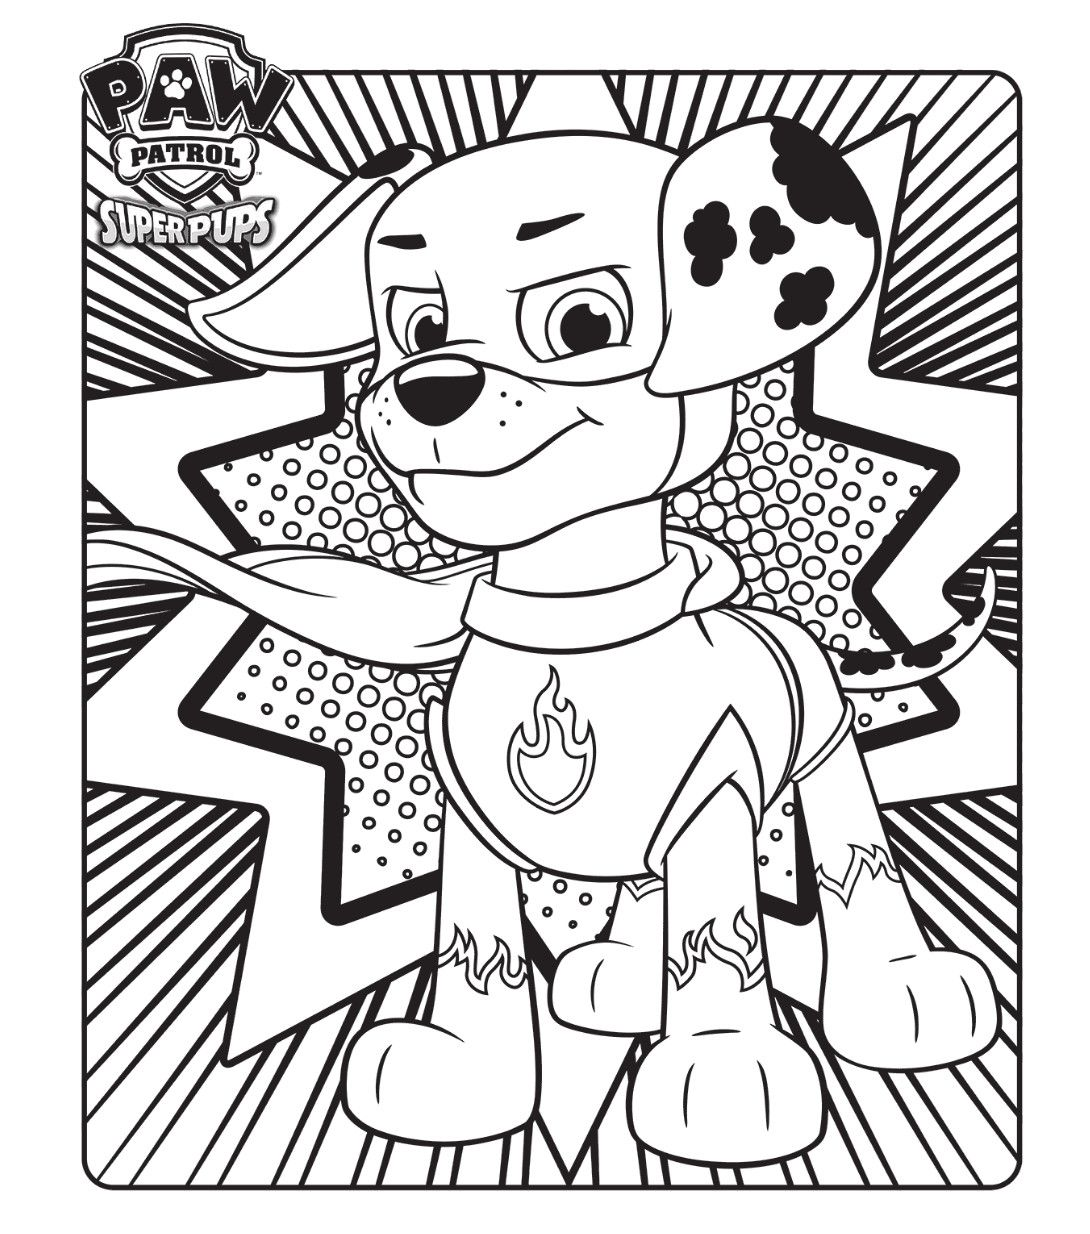 - Paw Patrol Coloring Page Best Of Paw Patrol Super Pups Colouring